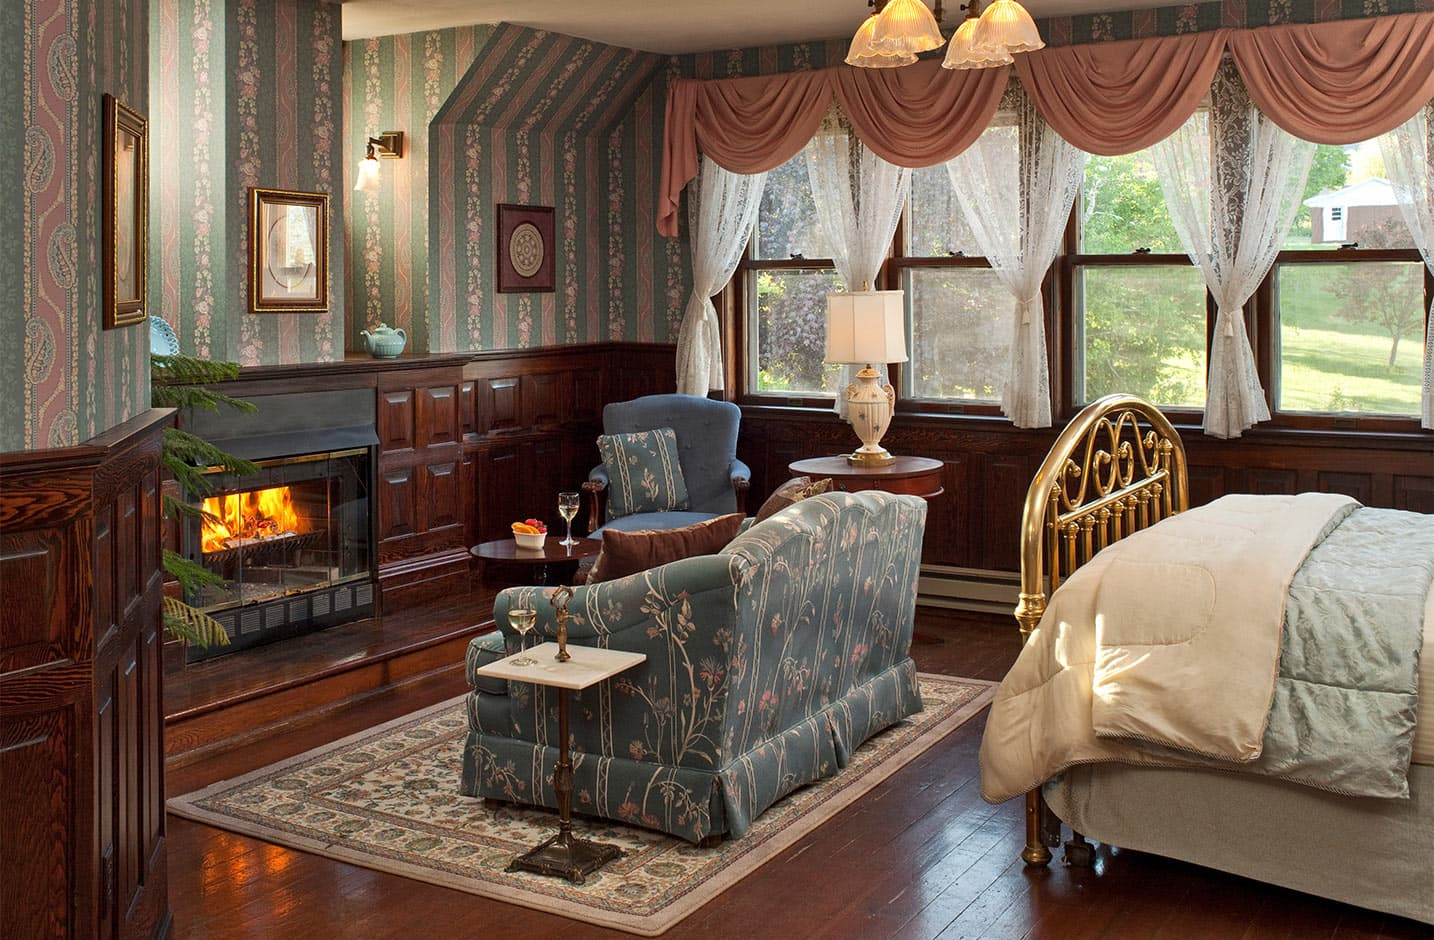 Ballroom at Le Chateau fireplace, couch, and bed